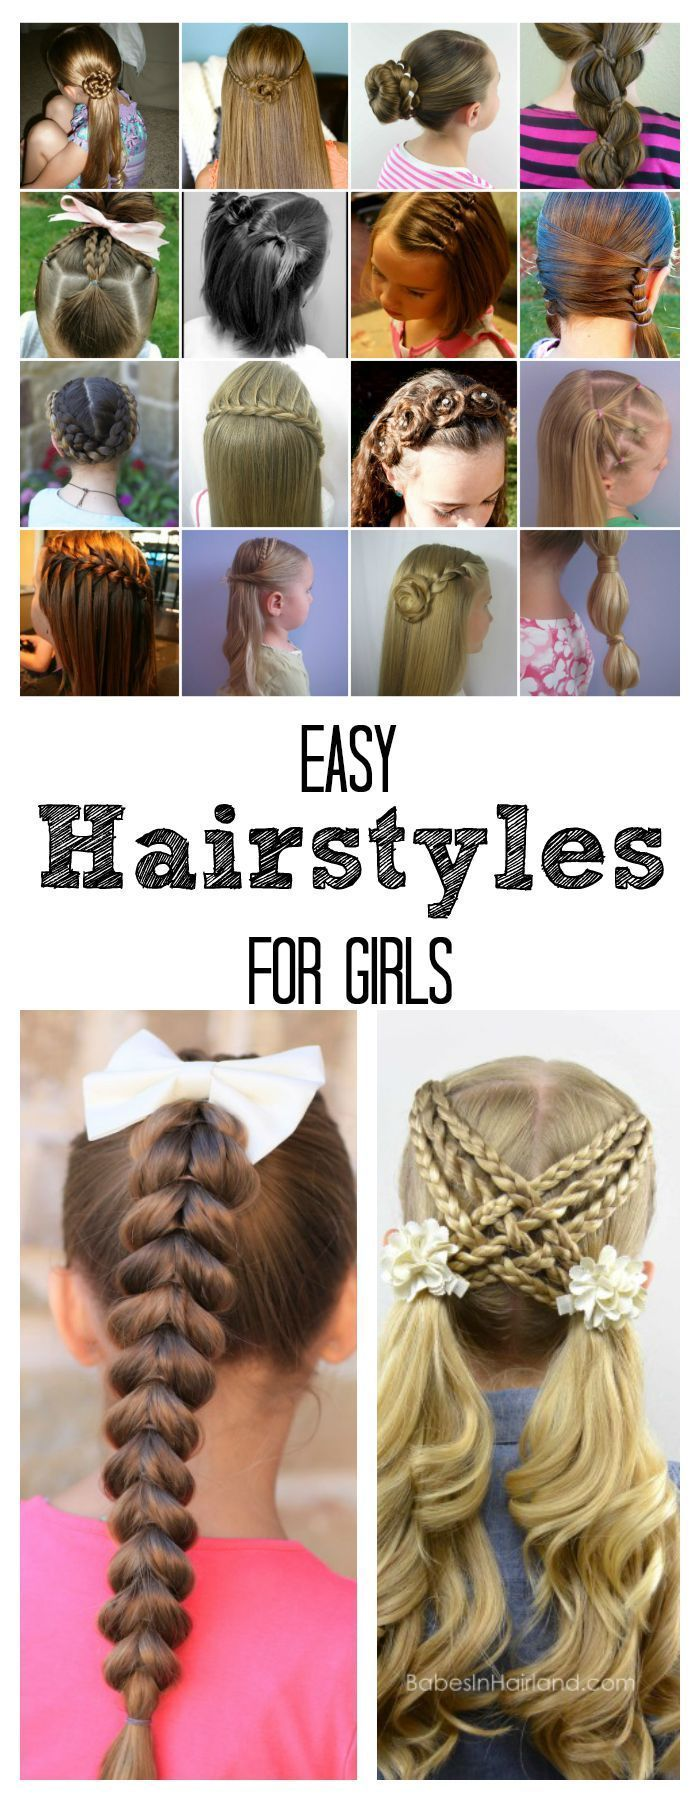 Incredible 1000 Ideas About Easy Girl Hairstyles On Pinterest Hairstyles Short Hairstyles Gunalazisus